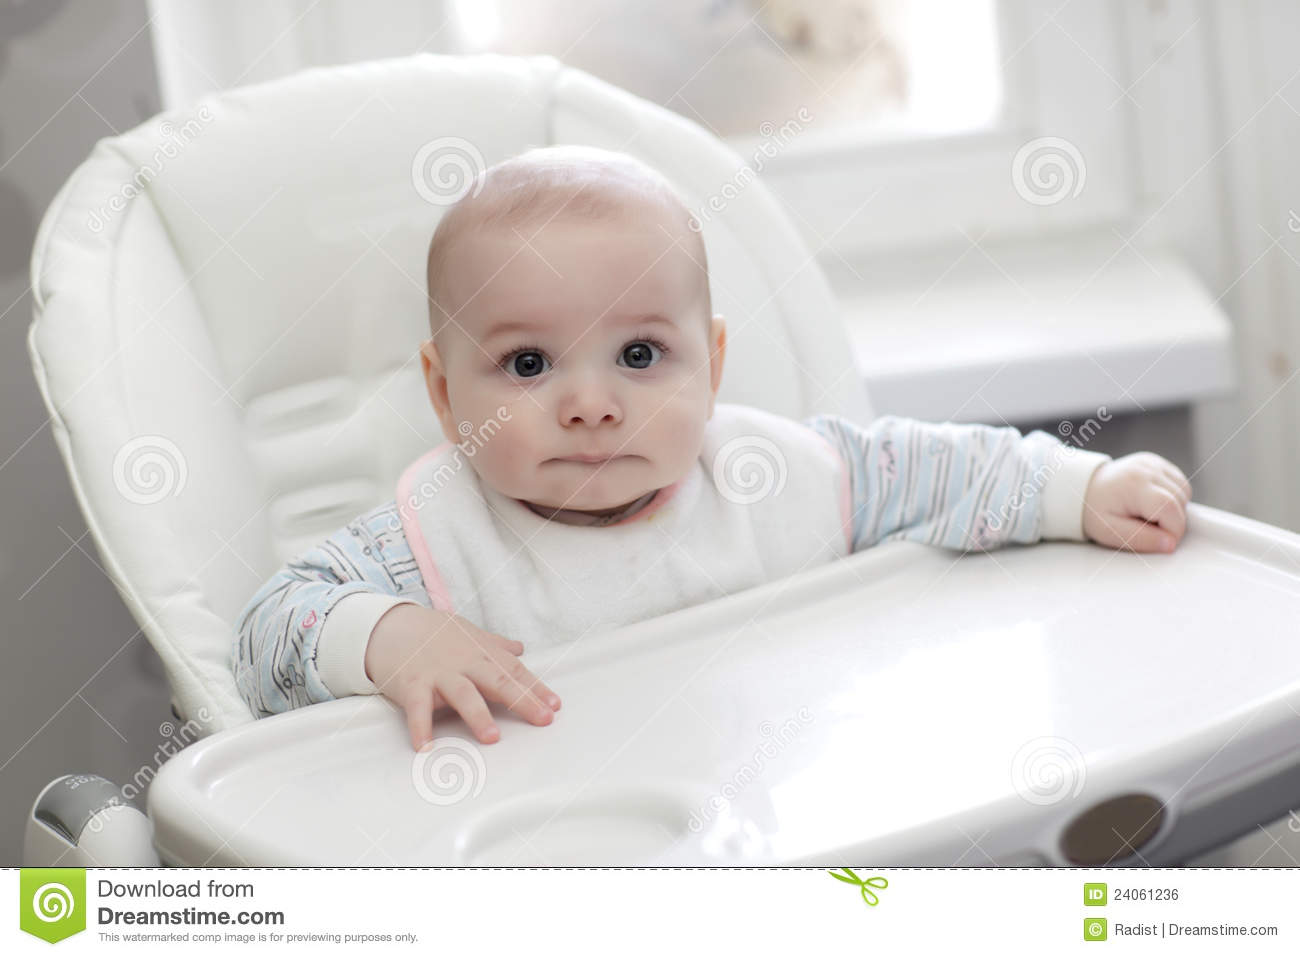 little boy chairs michigan adirondack chair baby in highchair royalty free stock image - image: 24061236